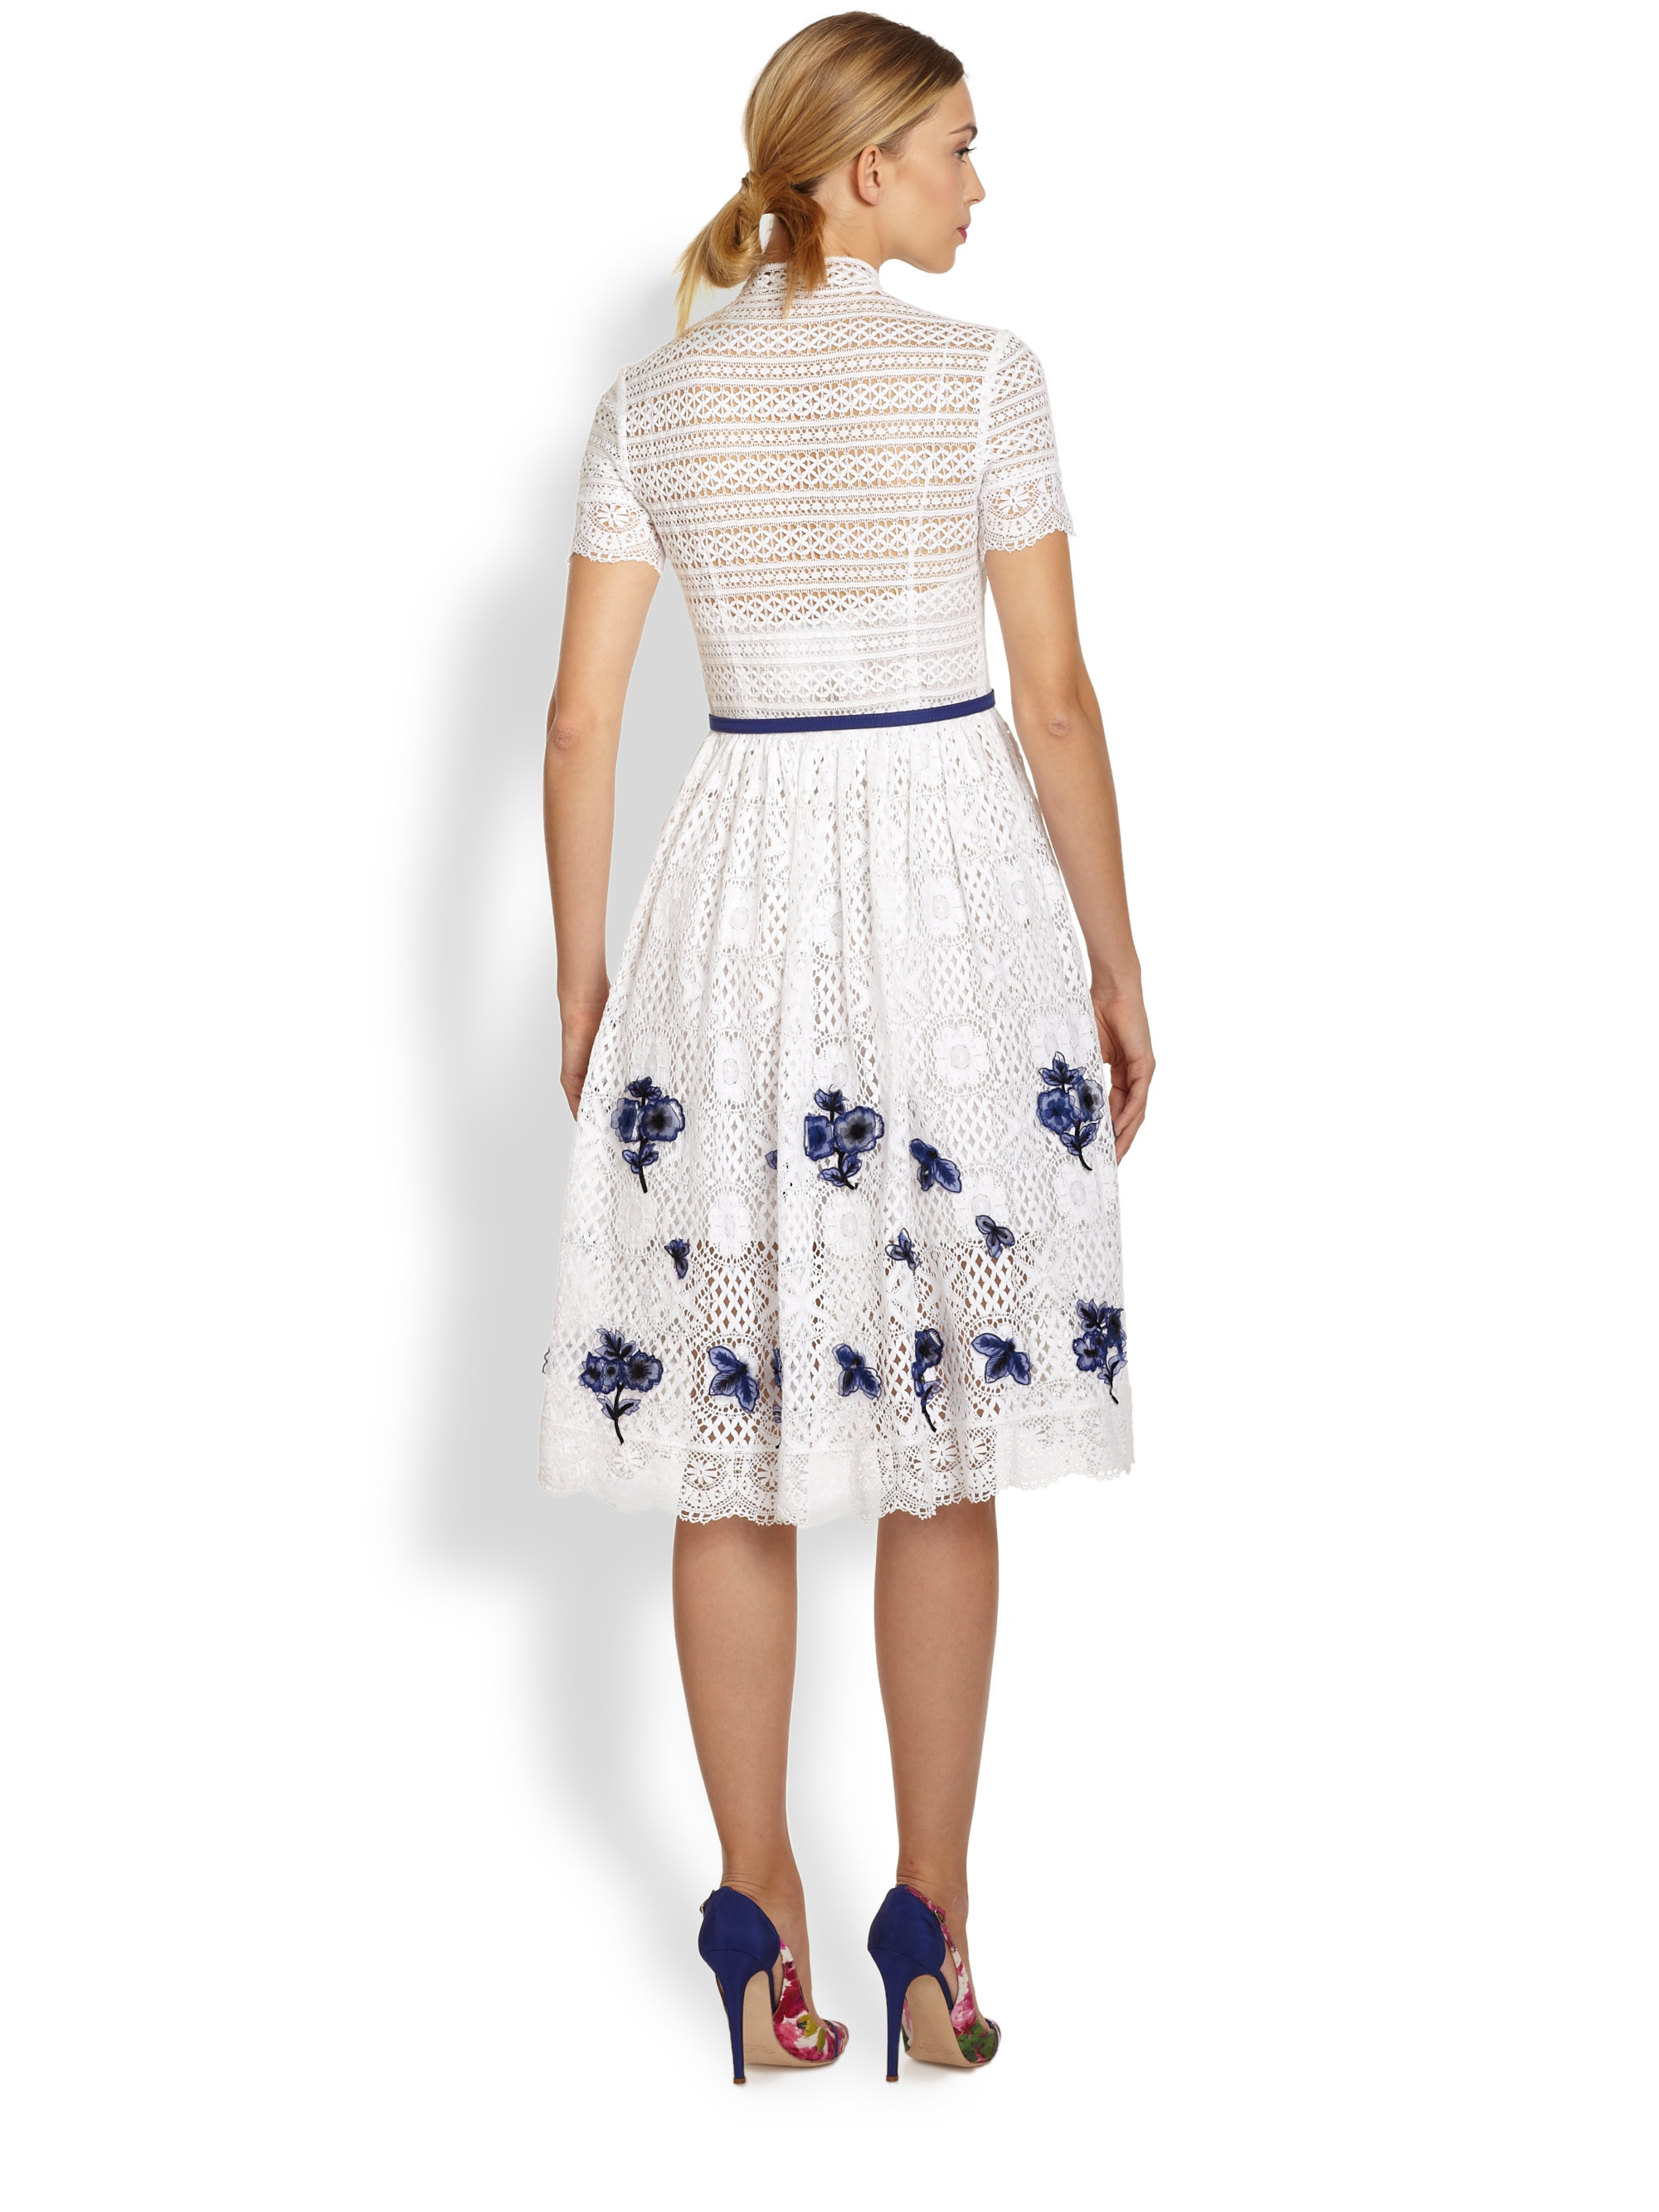 Lyst oscar de la renta lace floral embroidery dress in